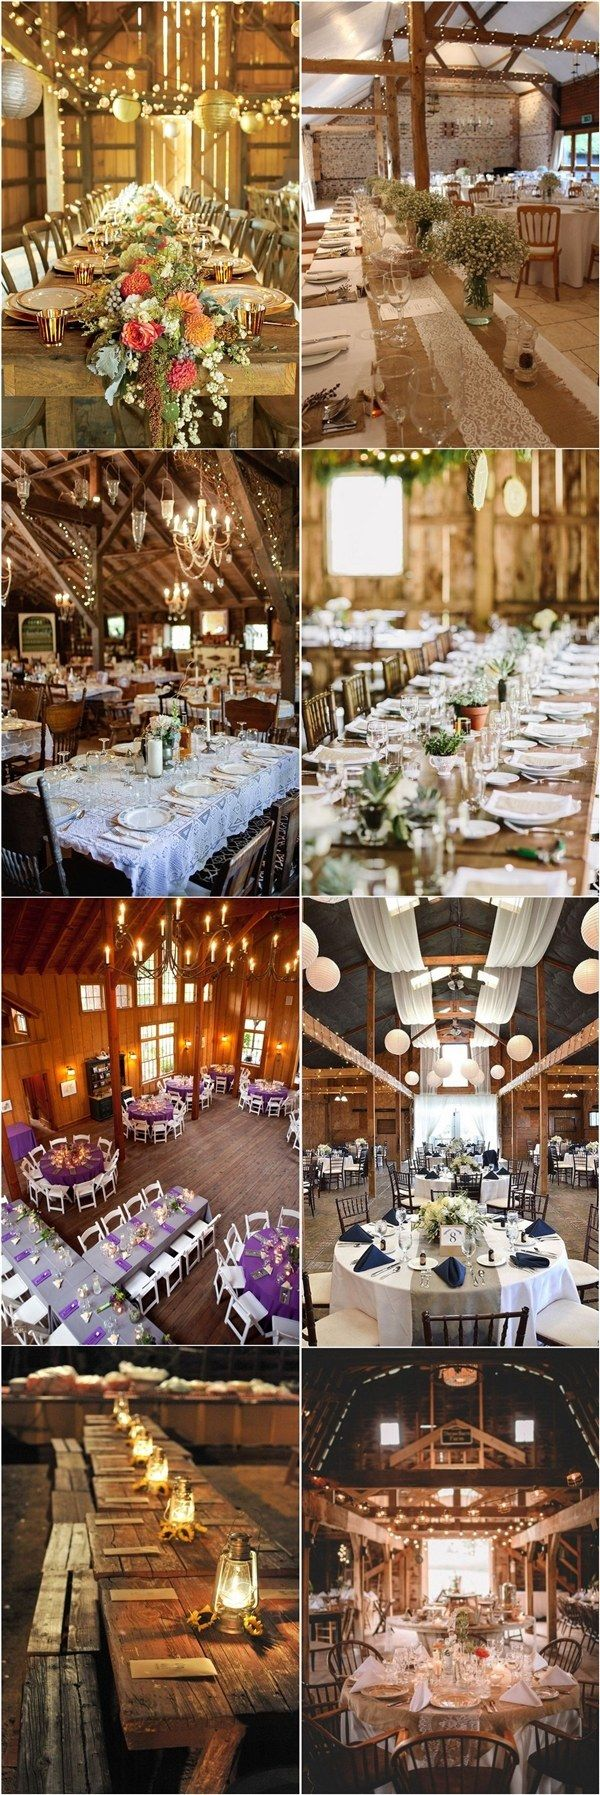 Rustic Barn Wedding Reception Table Setting Ideas / http://www.deerpearlflowers.com/barn-wedding-reception-table-decoration/